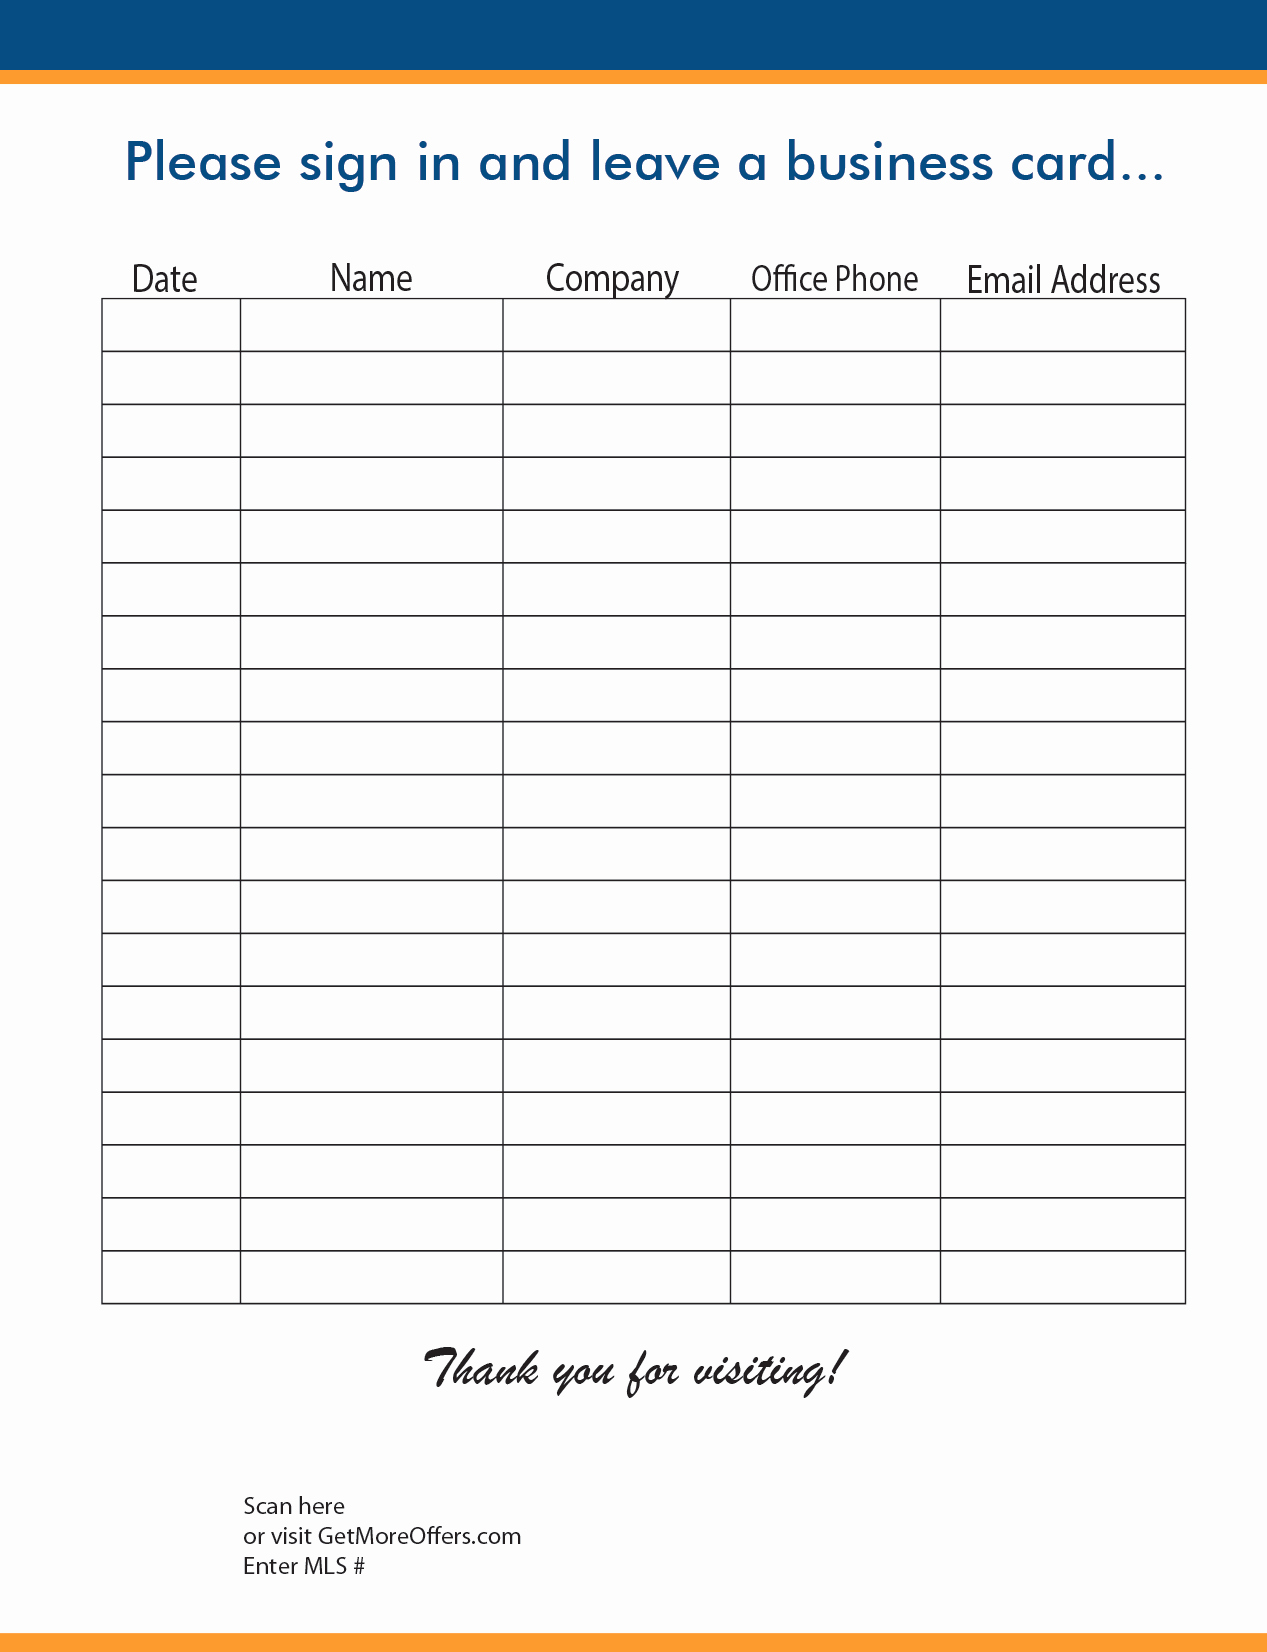 Real Estate Sign In Sheet Inspirational Open House Realtor Sign In Sheet Template